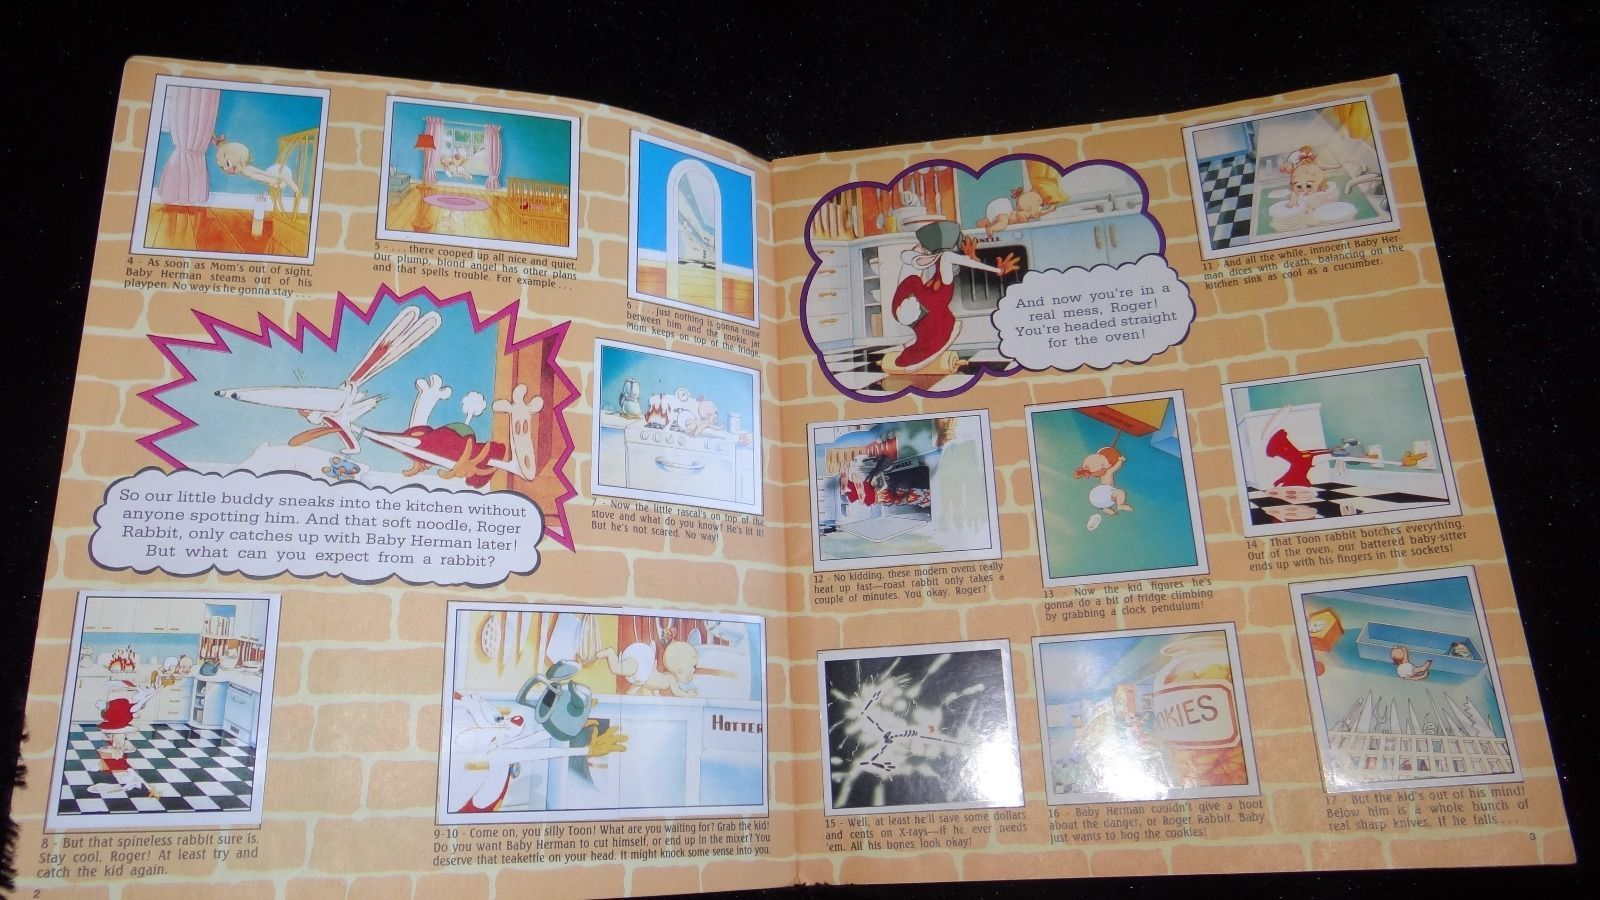 complete quotwho framed roger rabbitquot 1988 movie storybook